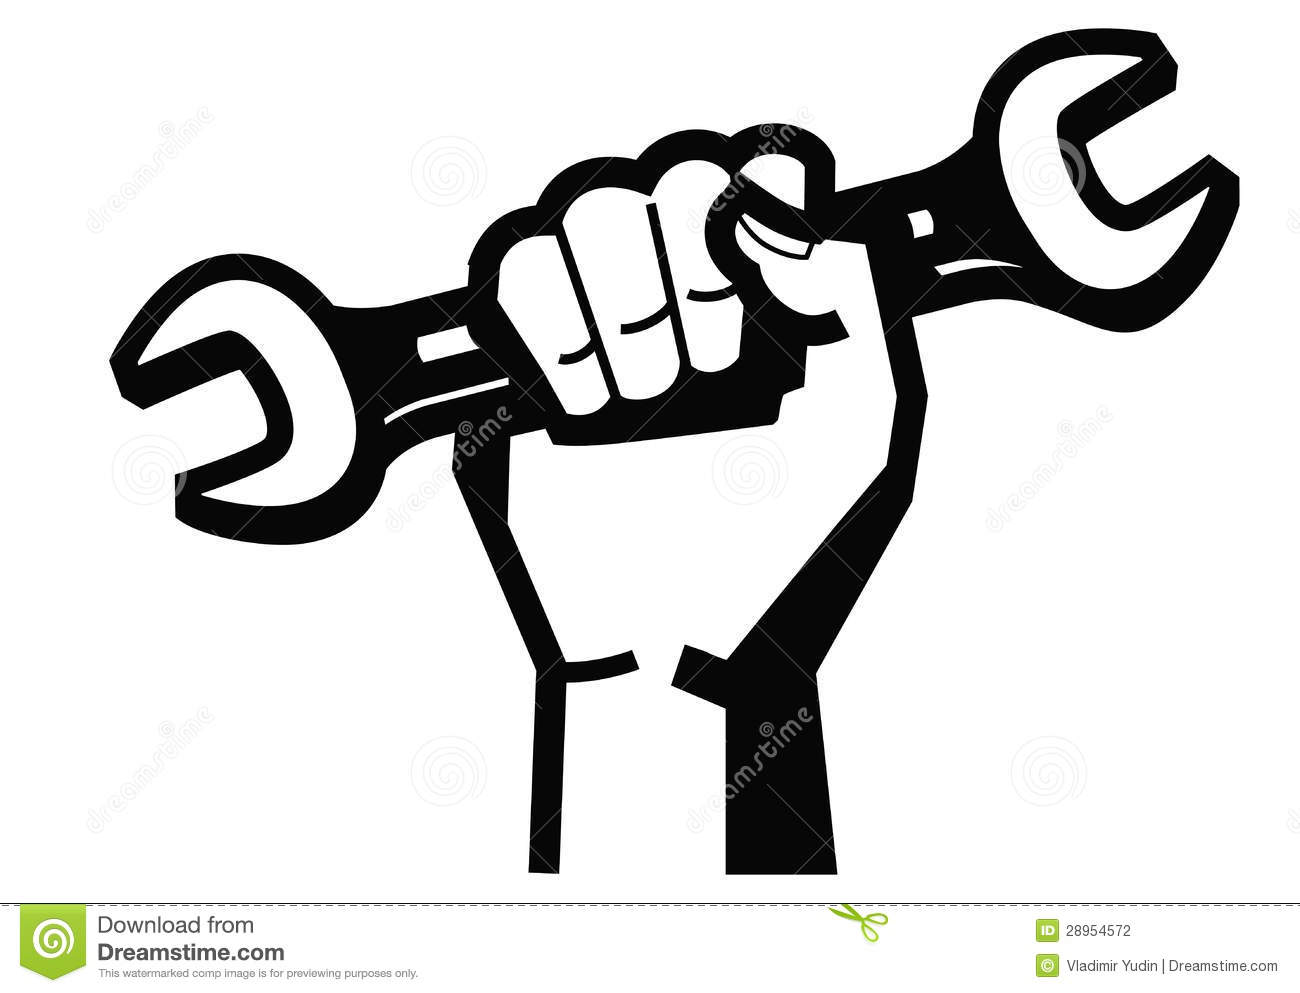 Wrench Black Vector Vector black illustration of